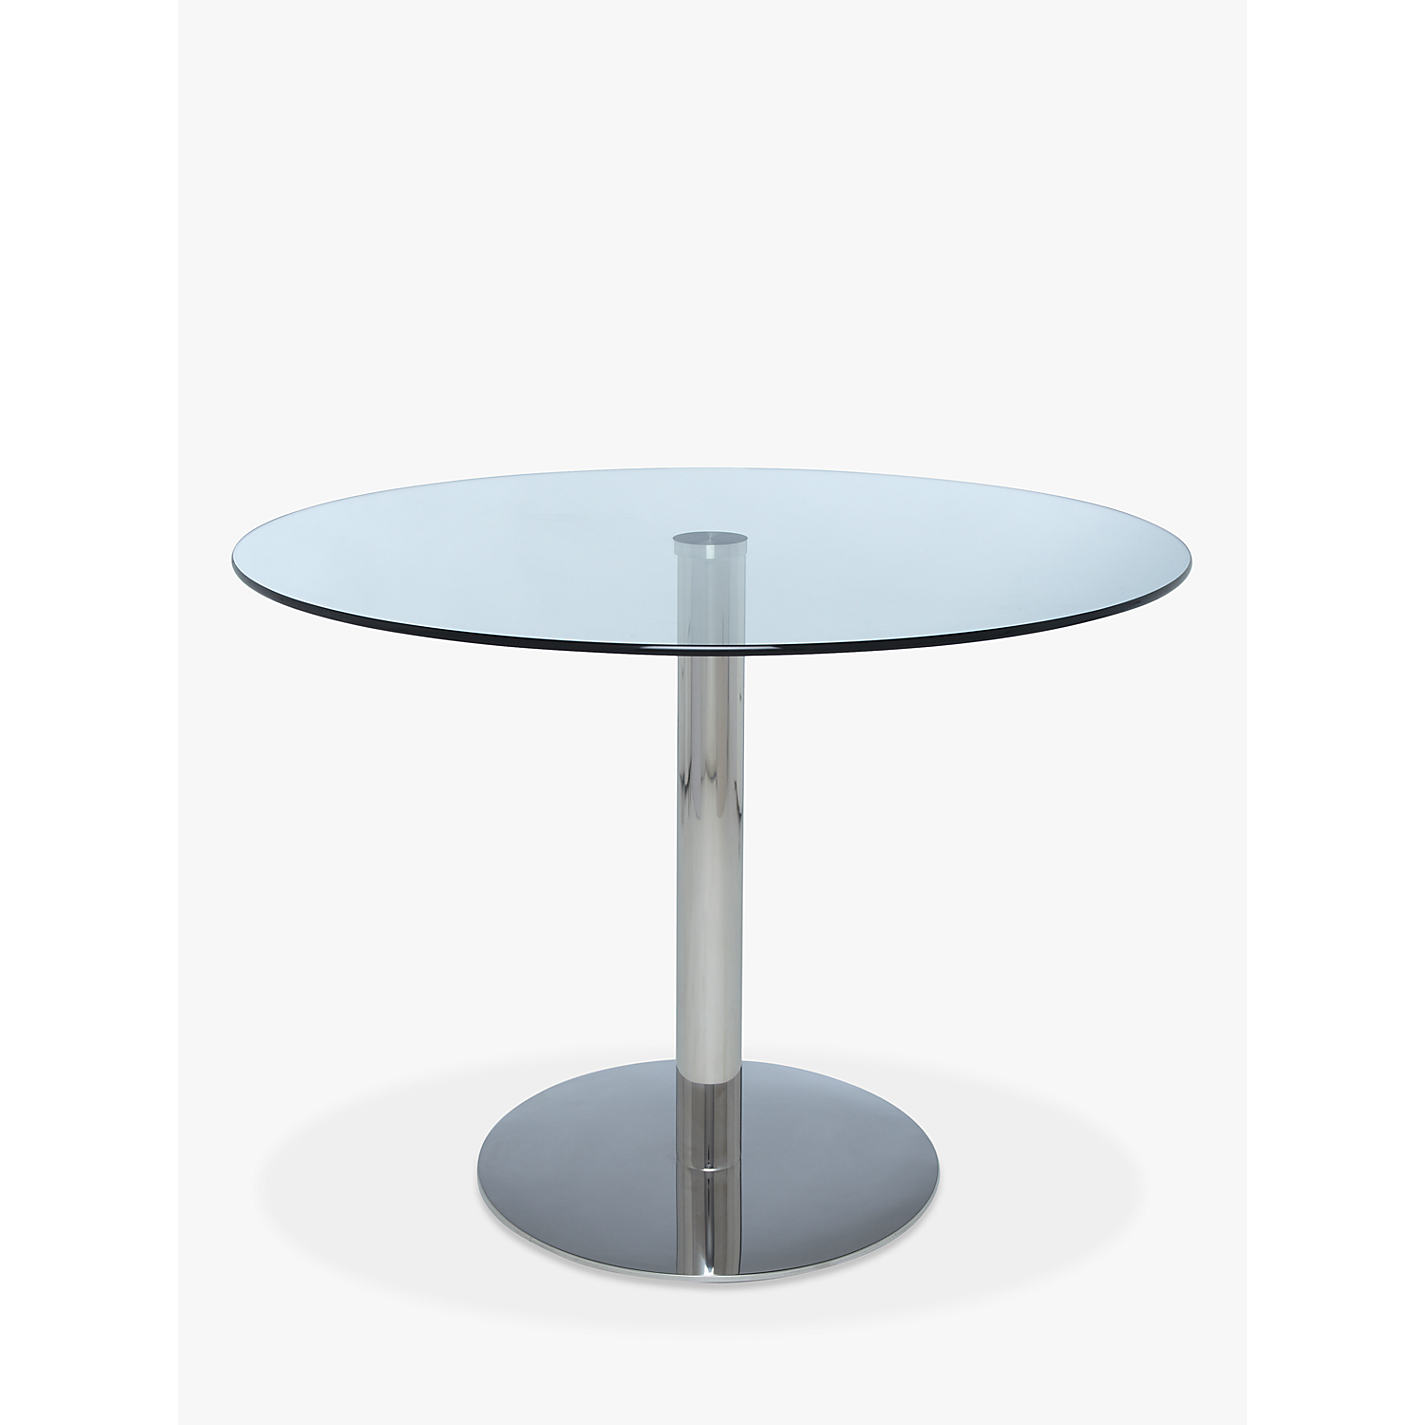 Buy John Lewis Enzo 4 Seater Round Glass Top Dining Table Online At Johnlewis